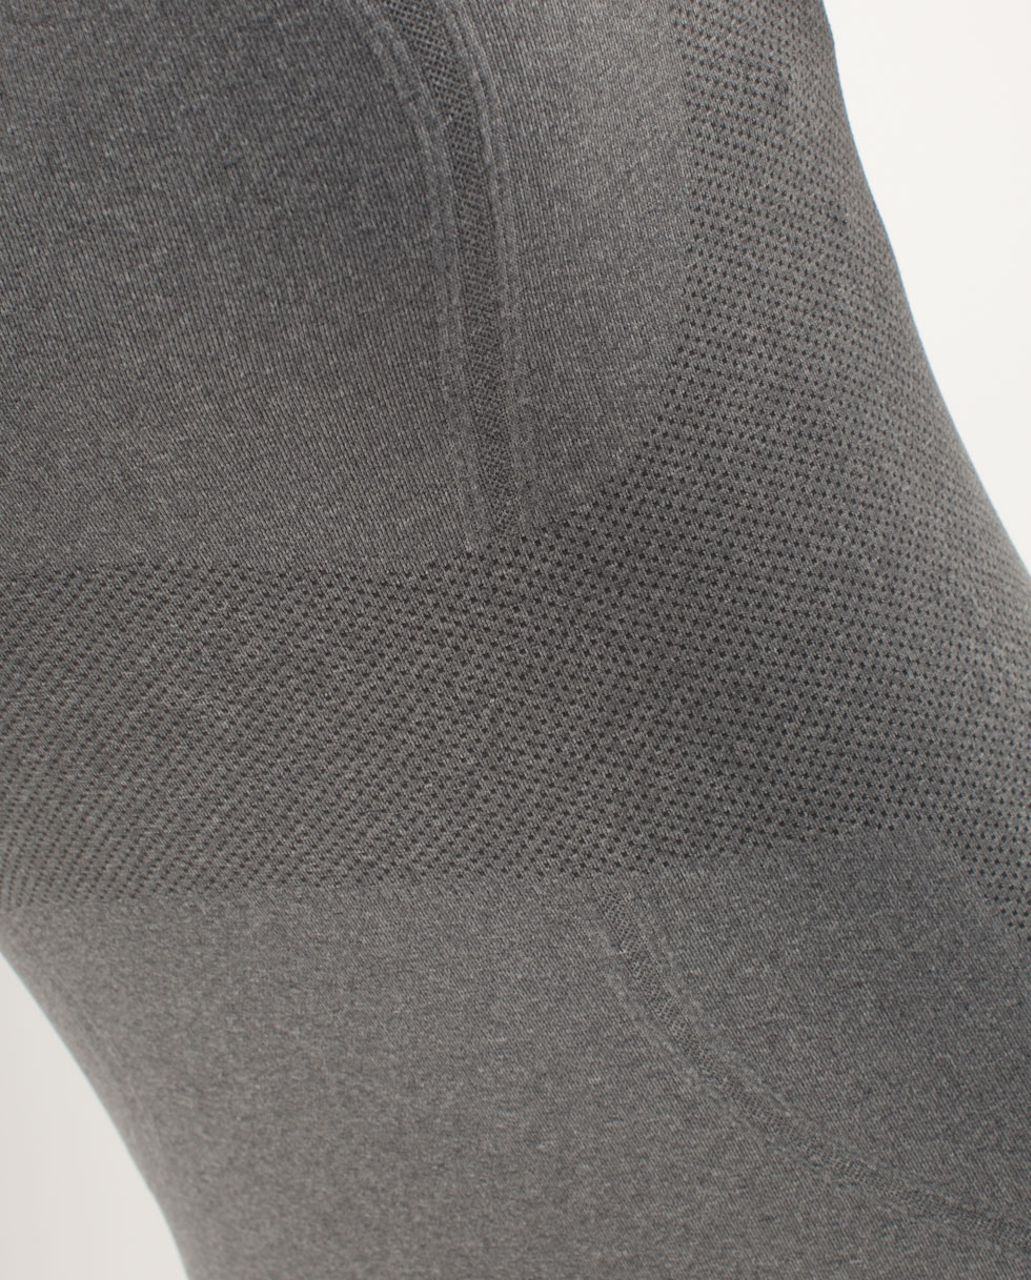 Lululemon Run:  Swiftly Tech Short Sleeve - Dark Classic Sport Grey